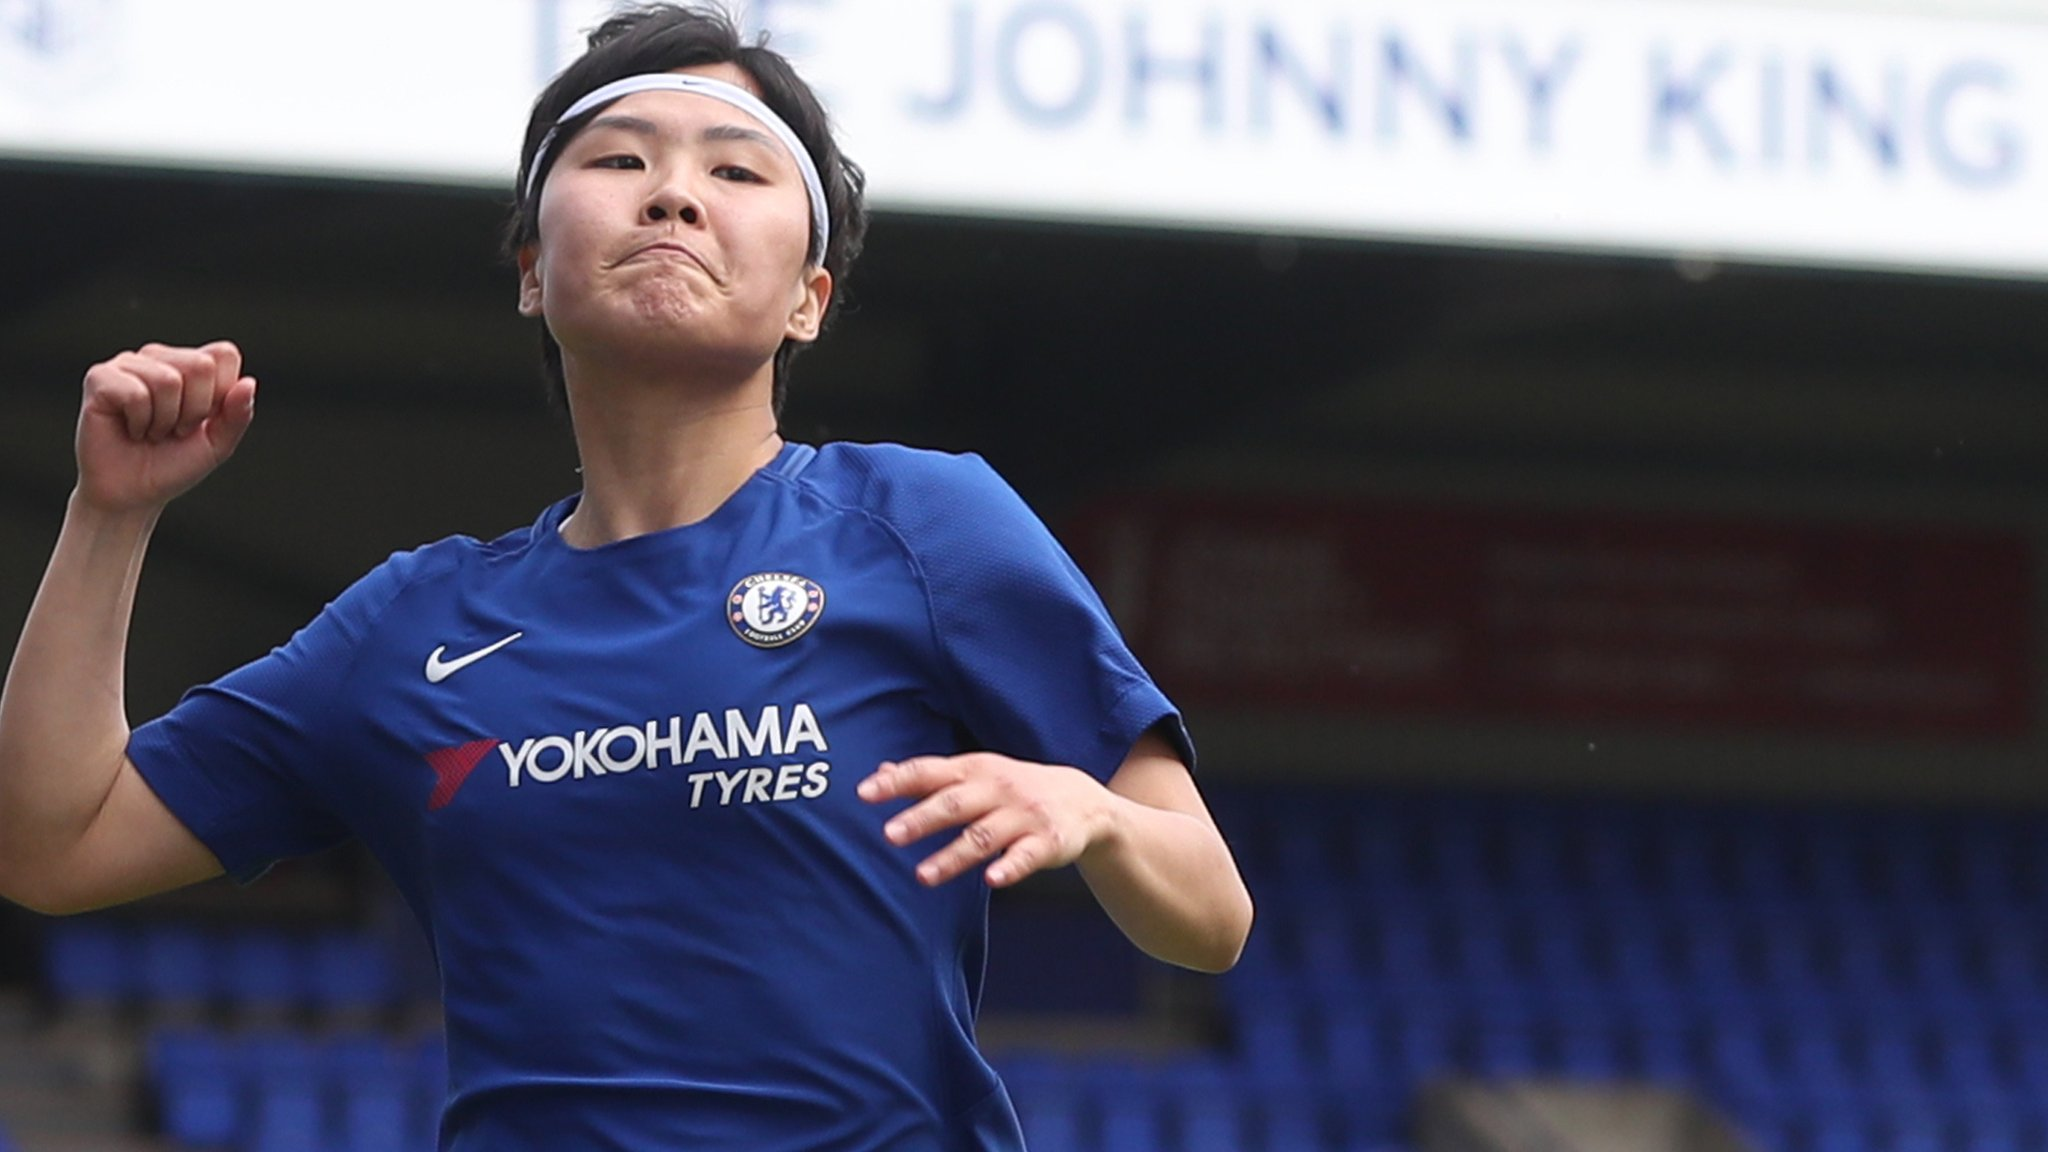 Chelsea come from 2-0 down to beat Liverpool & end WSL1 season unbeaten